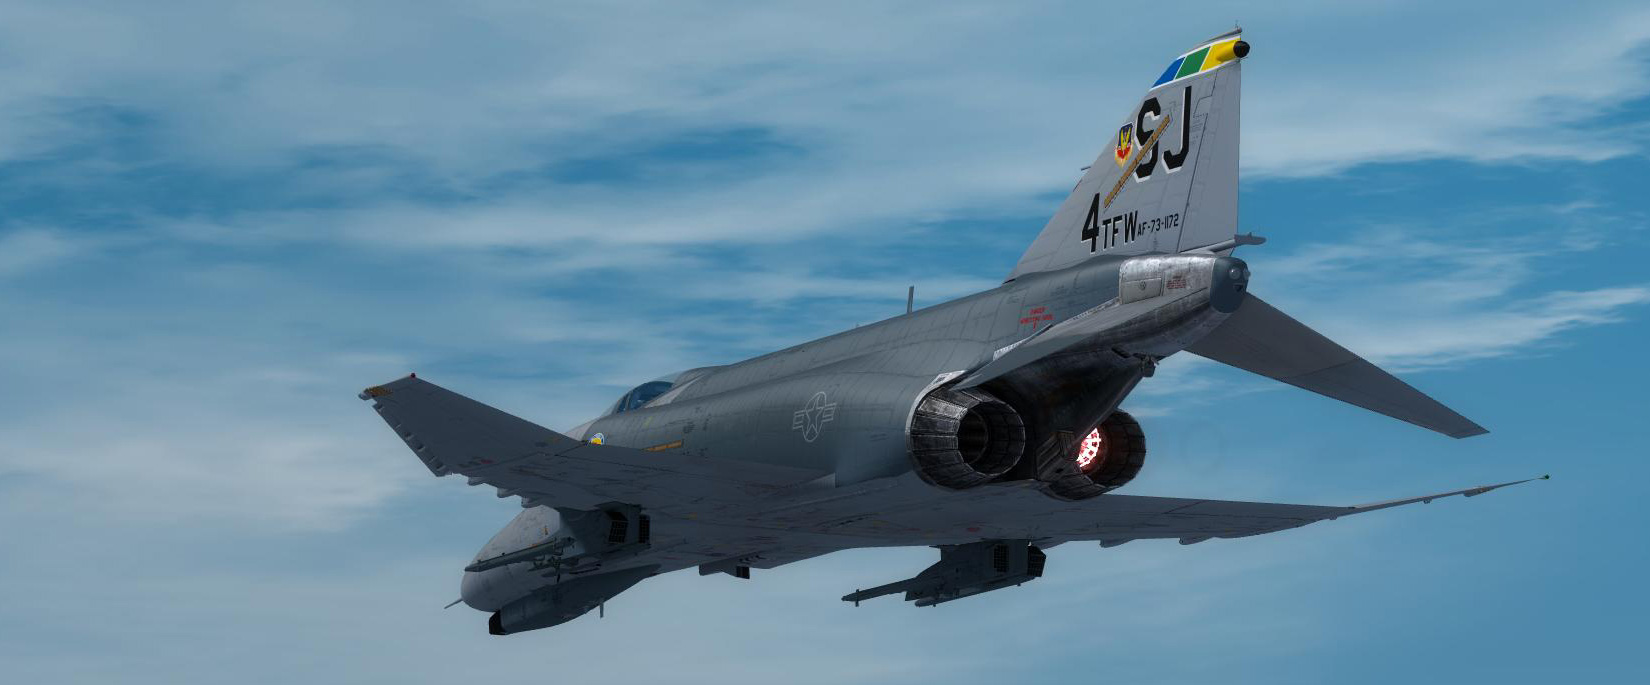 MILVIZ - ADVANCED SERIES F-4E 鬼怪式战斗机 II 高级版 FSX P3D